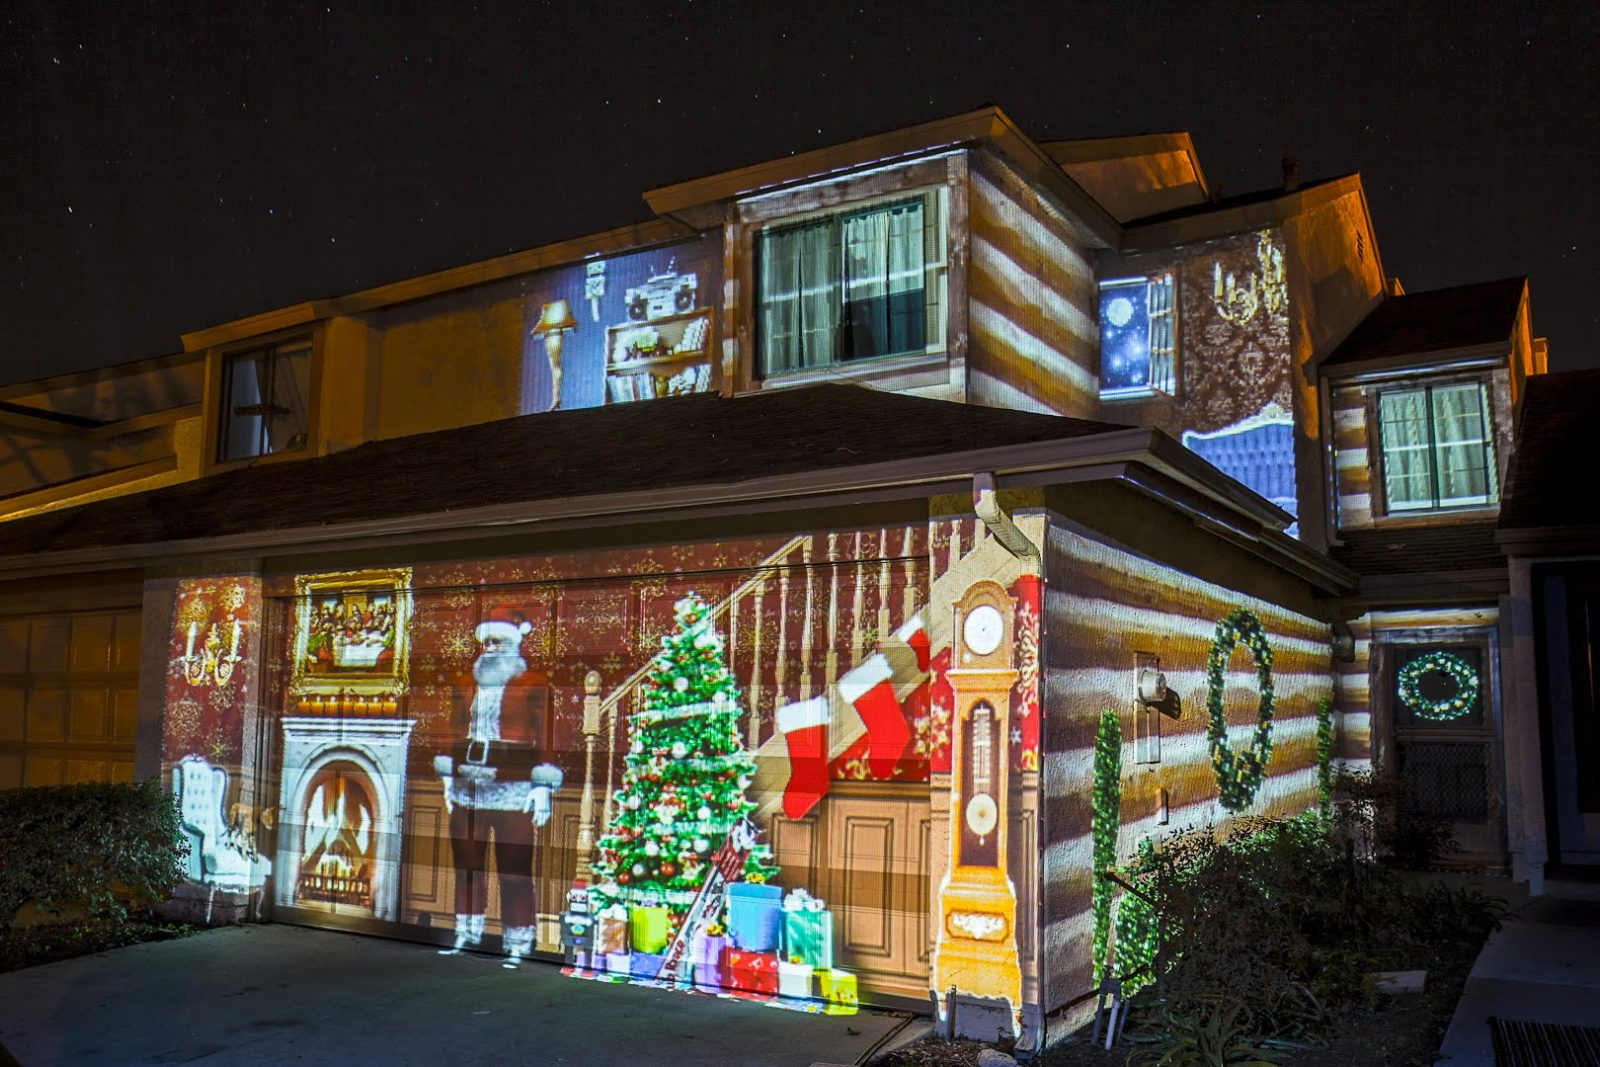 Chrismtas LIght projections